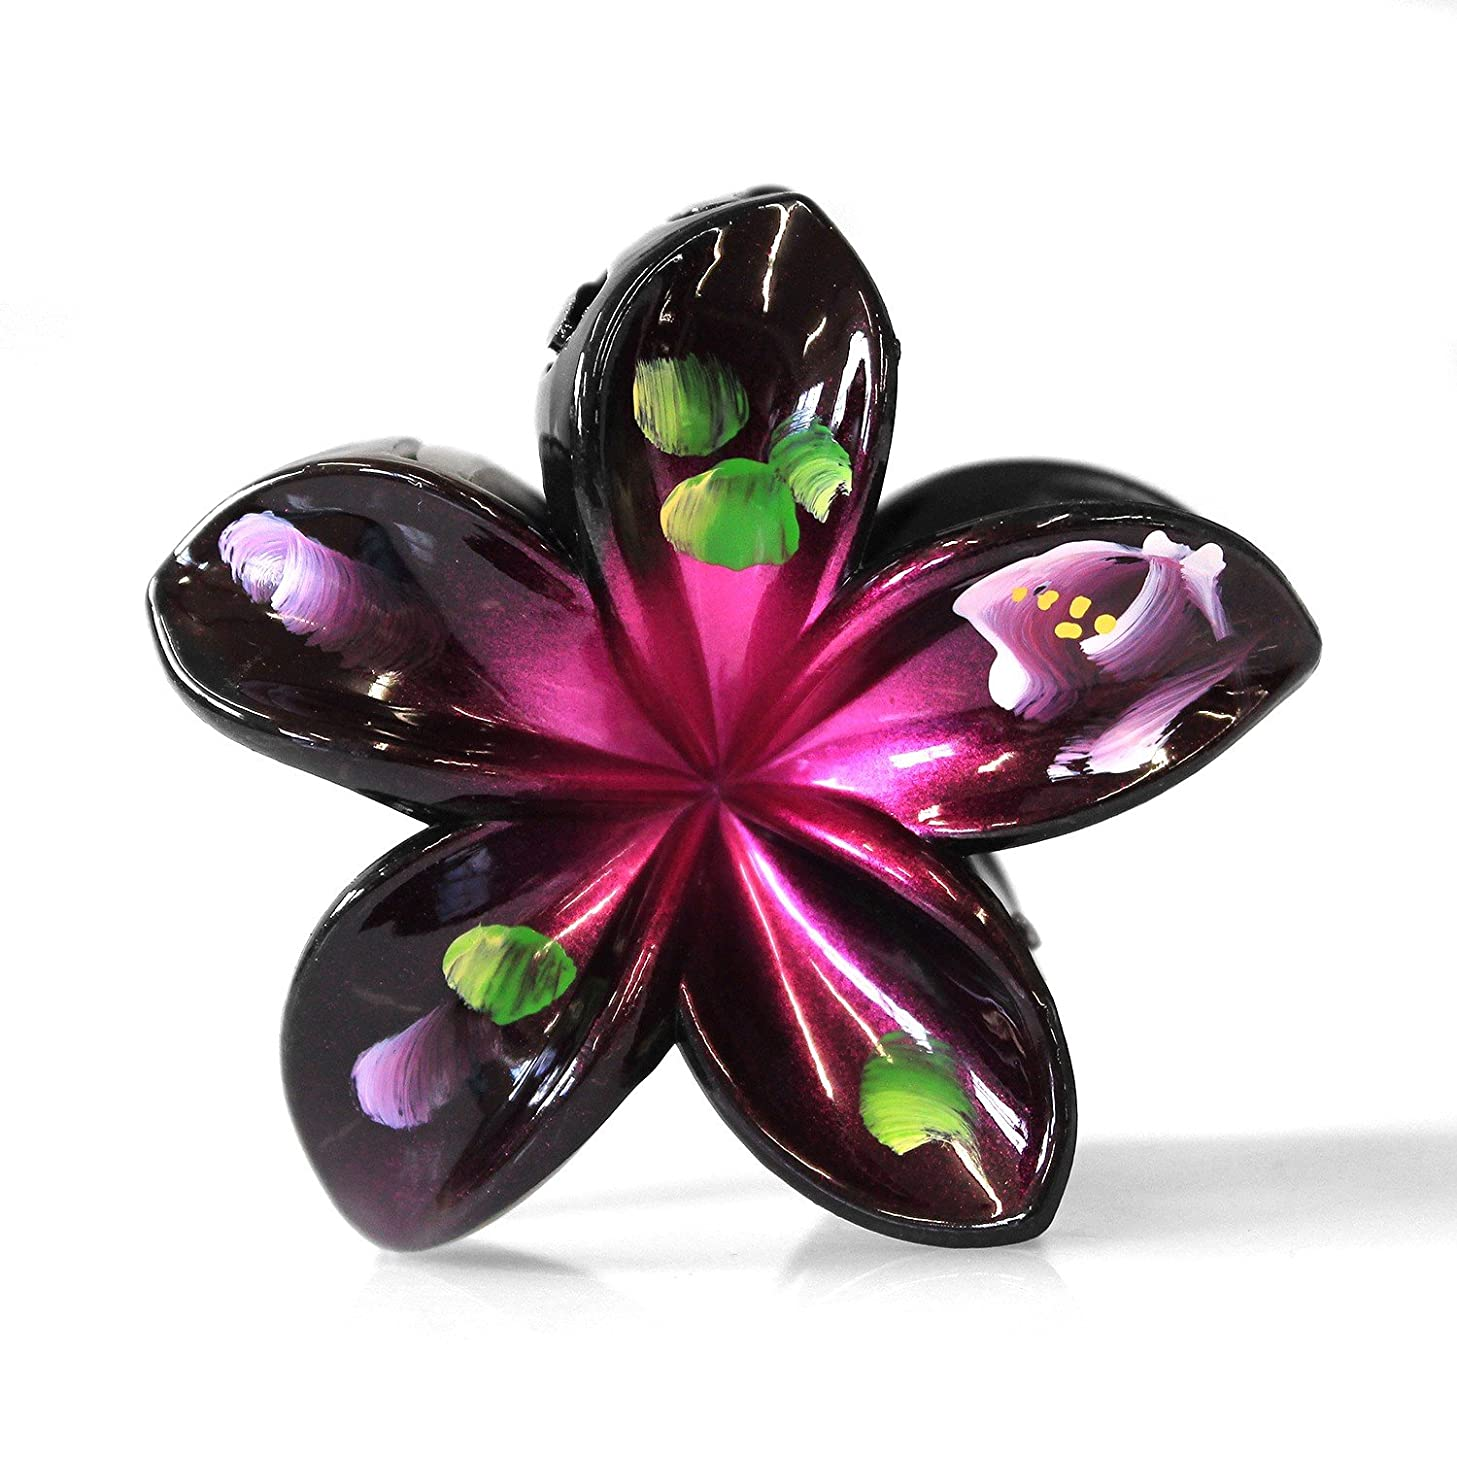 Hawaii Luau Party Dance Performance Plastic Hand Painted Plumeria Flower hair claw clips in Black assorted colors